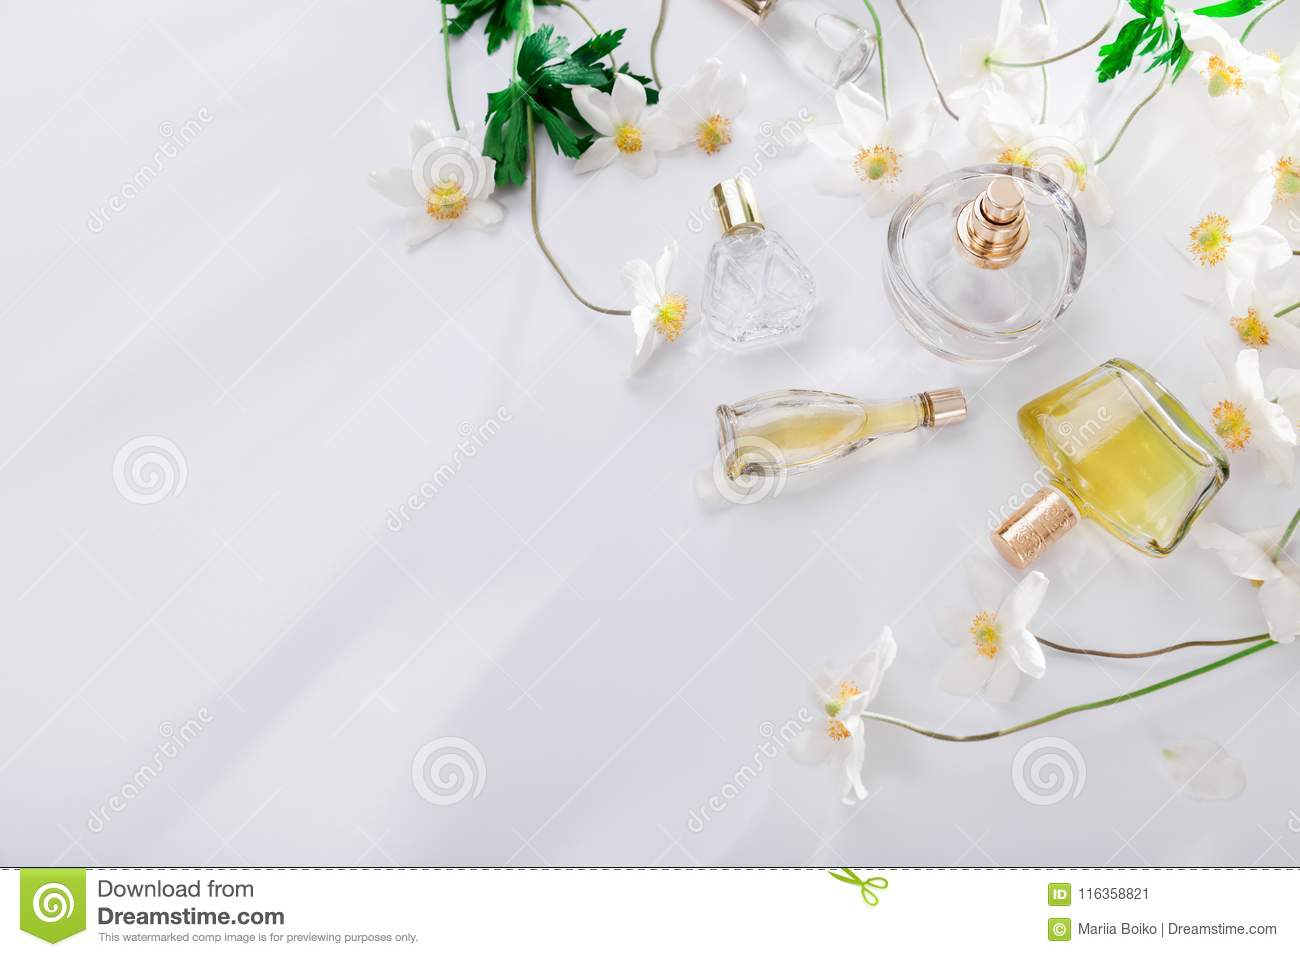 Natural perfume concept. Bottles of perfume with white flowers. Floral fragrance